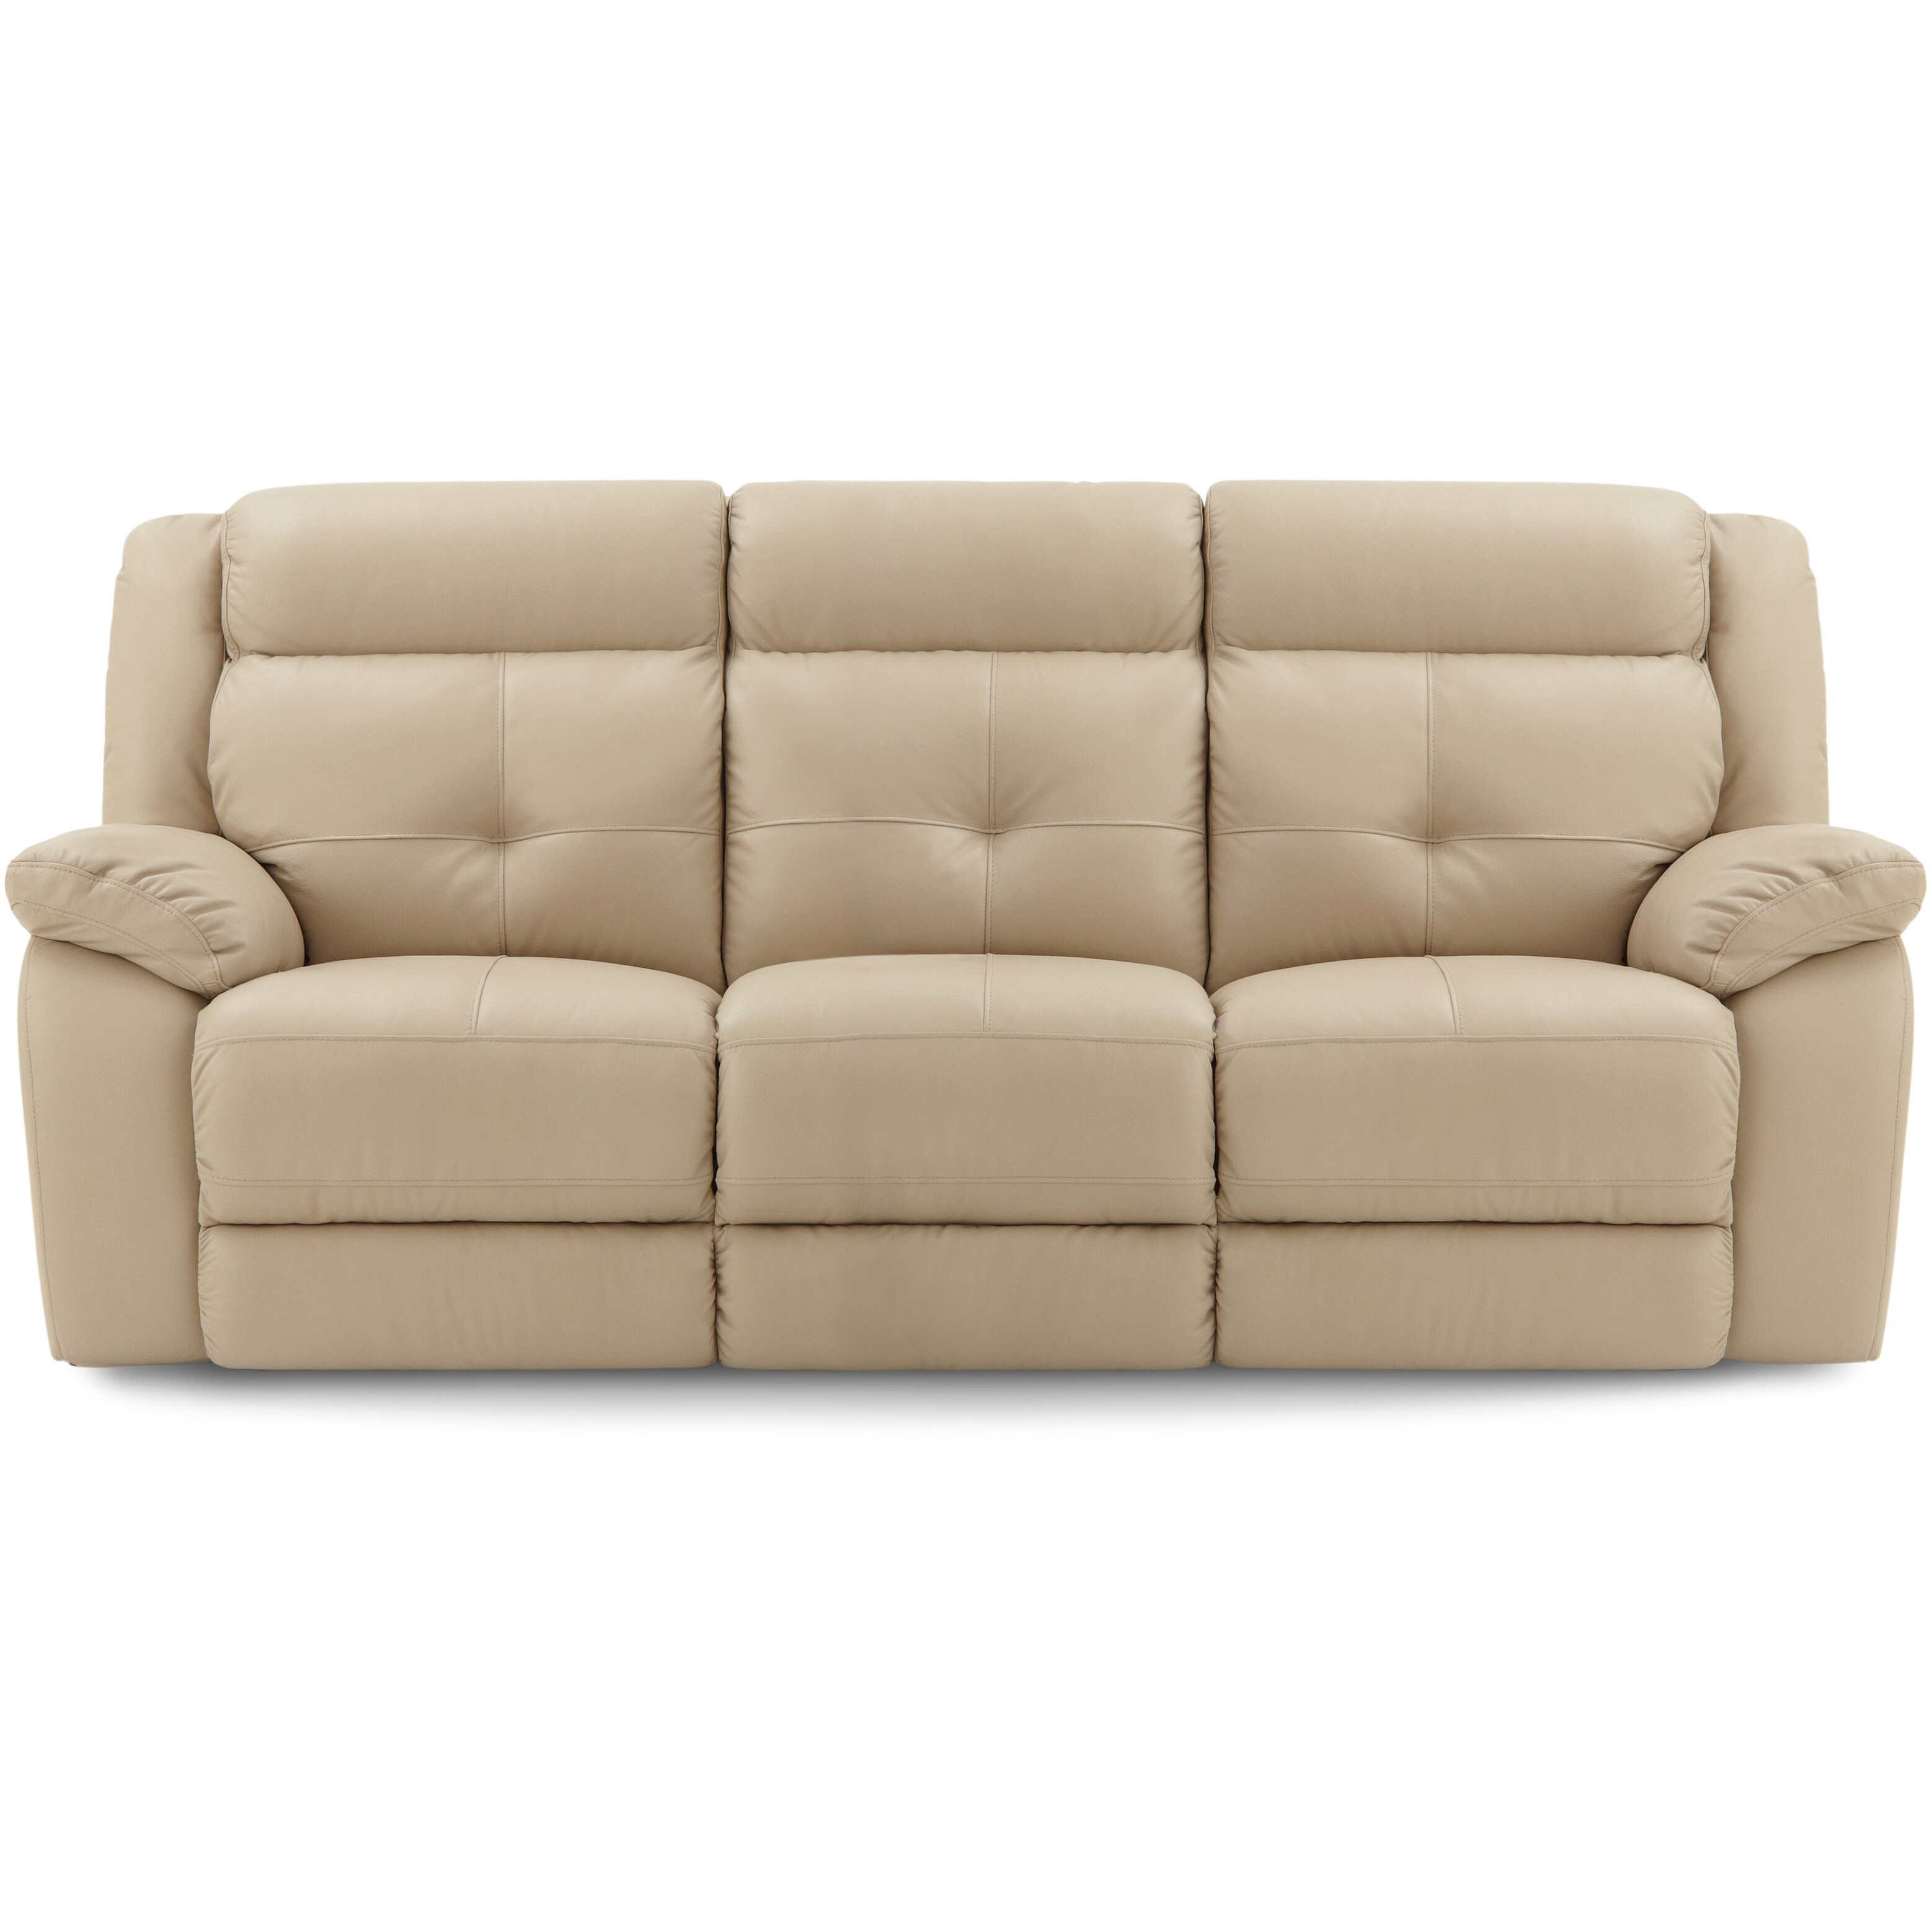 Art Van Power Leather Reclining Sofa Overstock 9947157